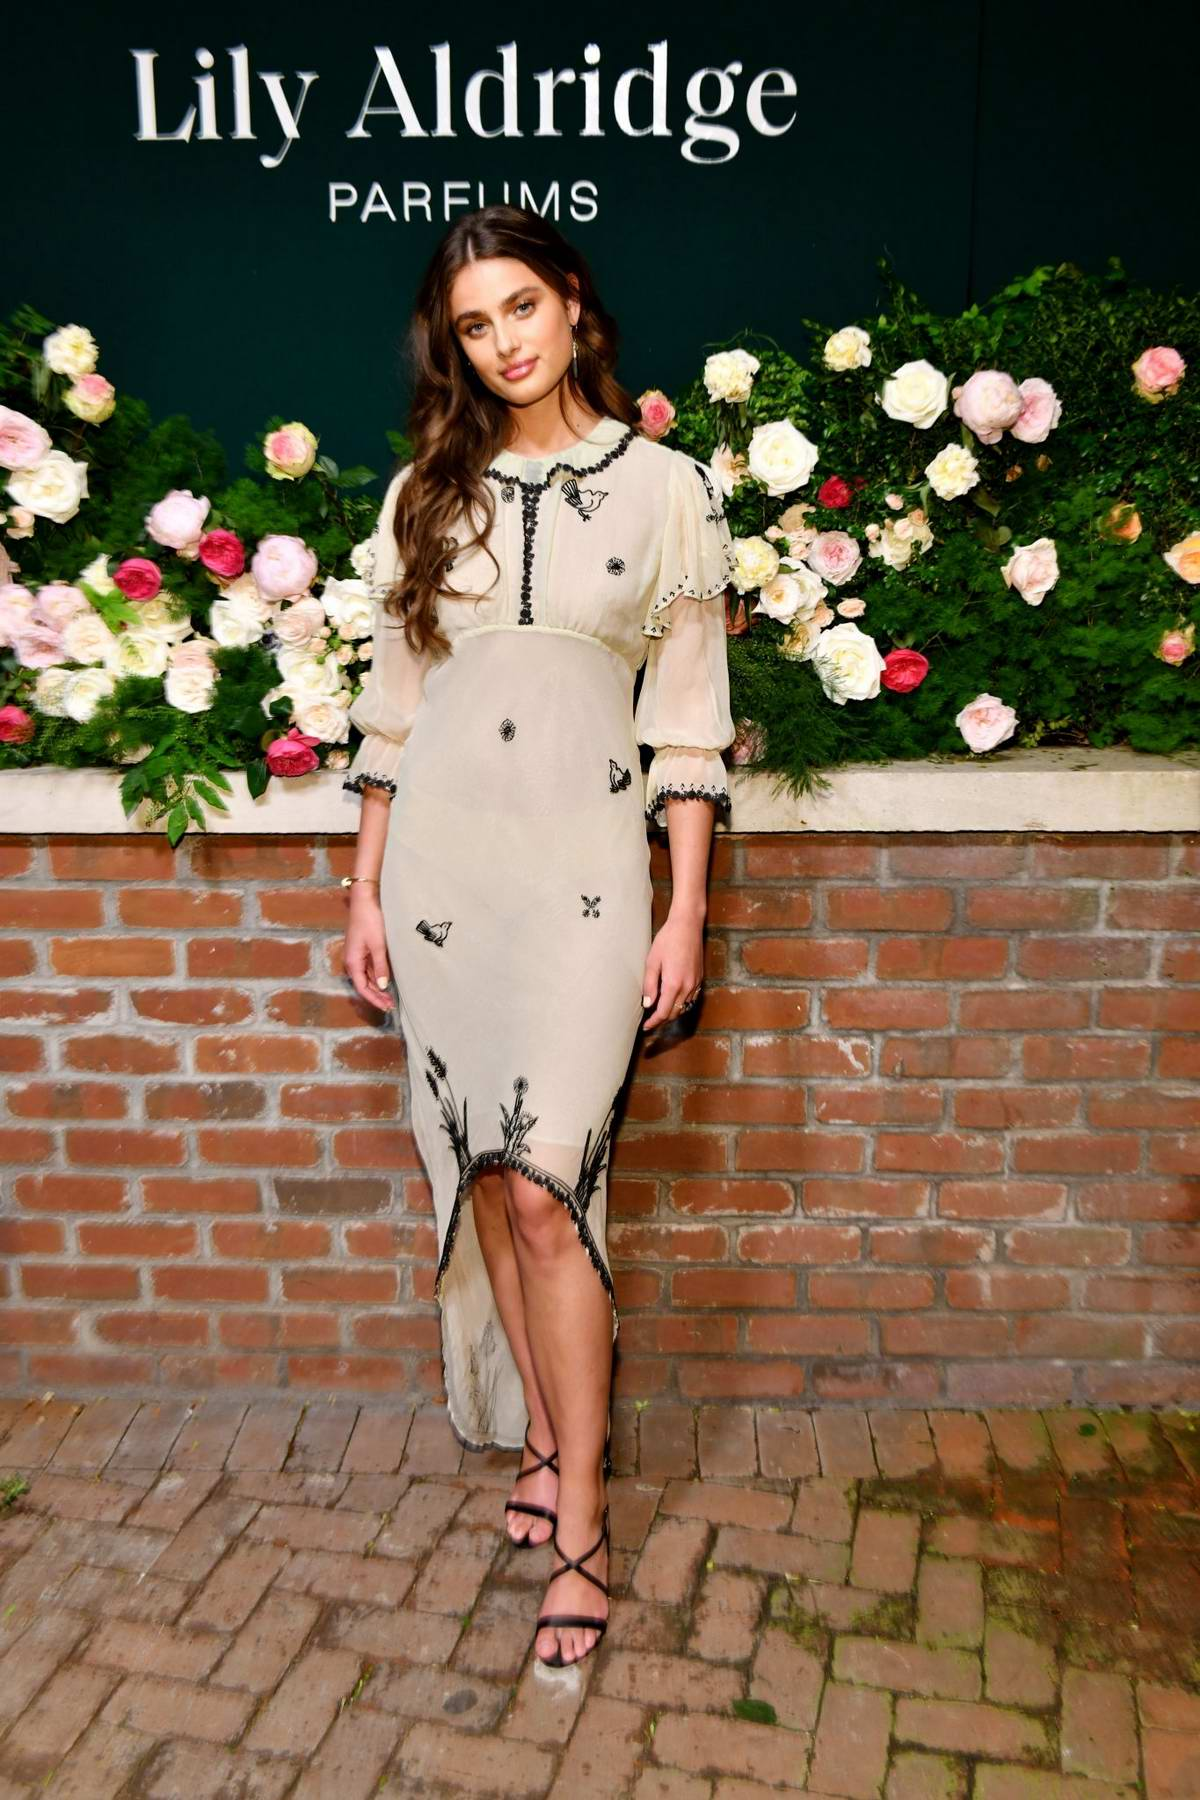 Taylor Hill Attends The 'lily Aldridge Parfums' Launch